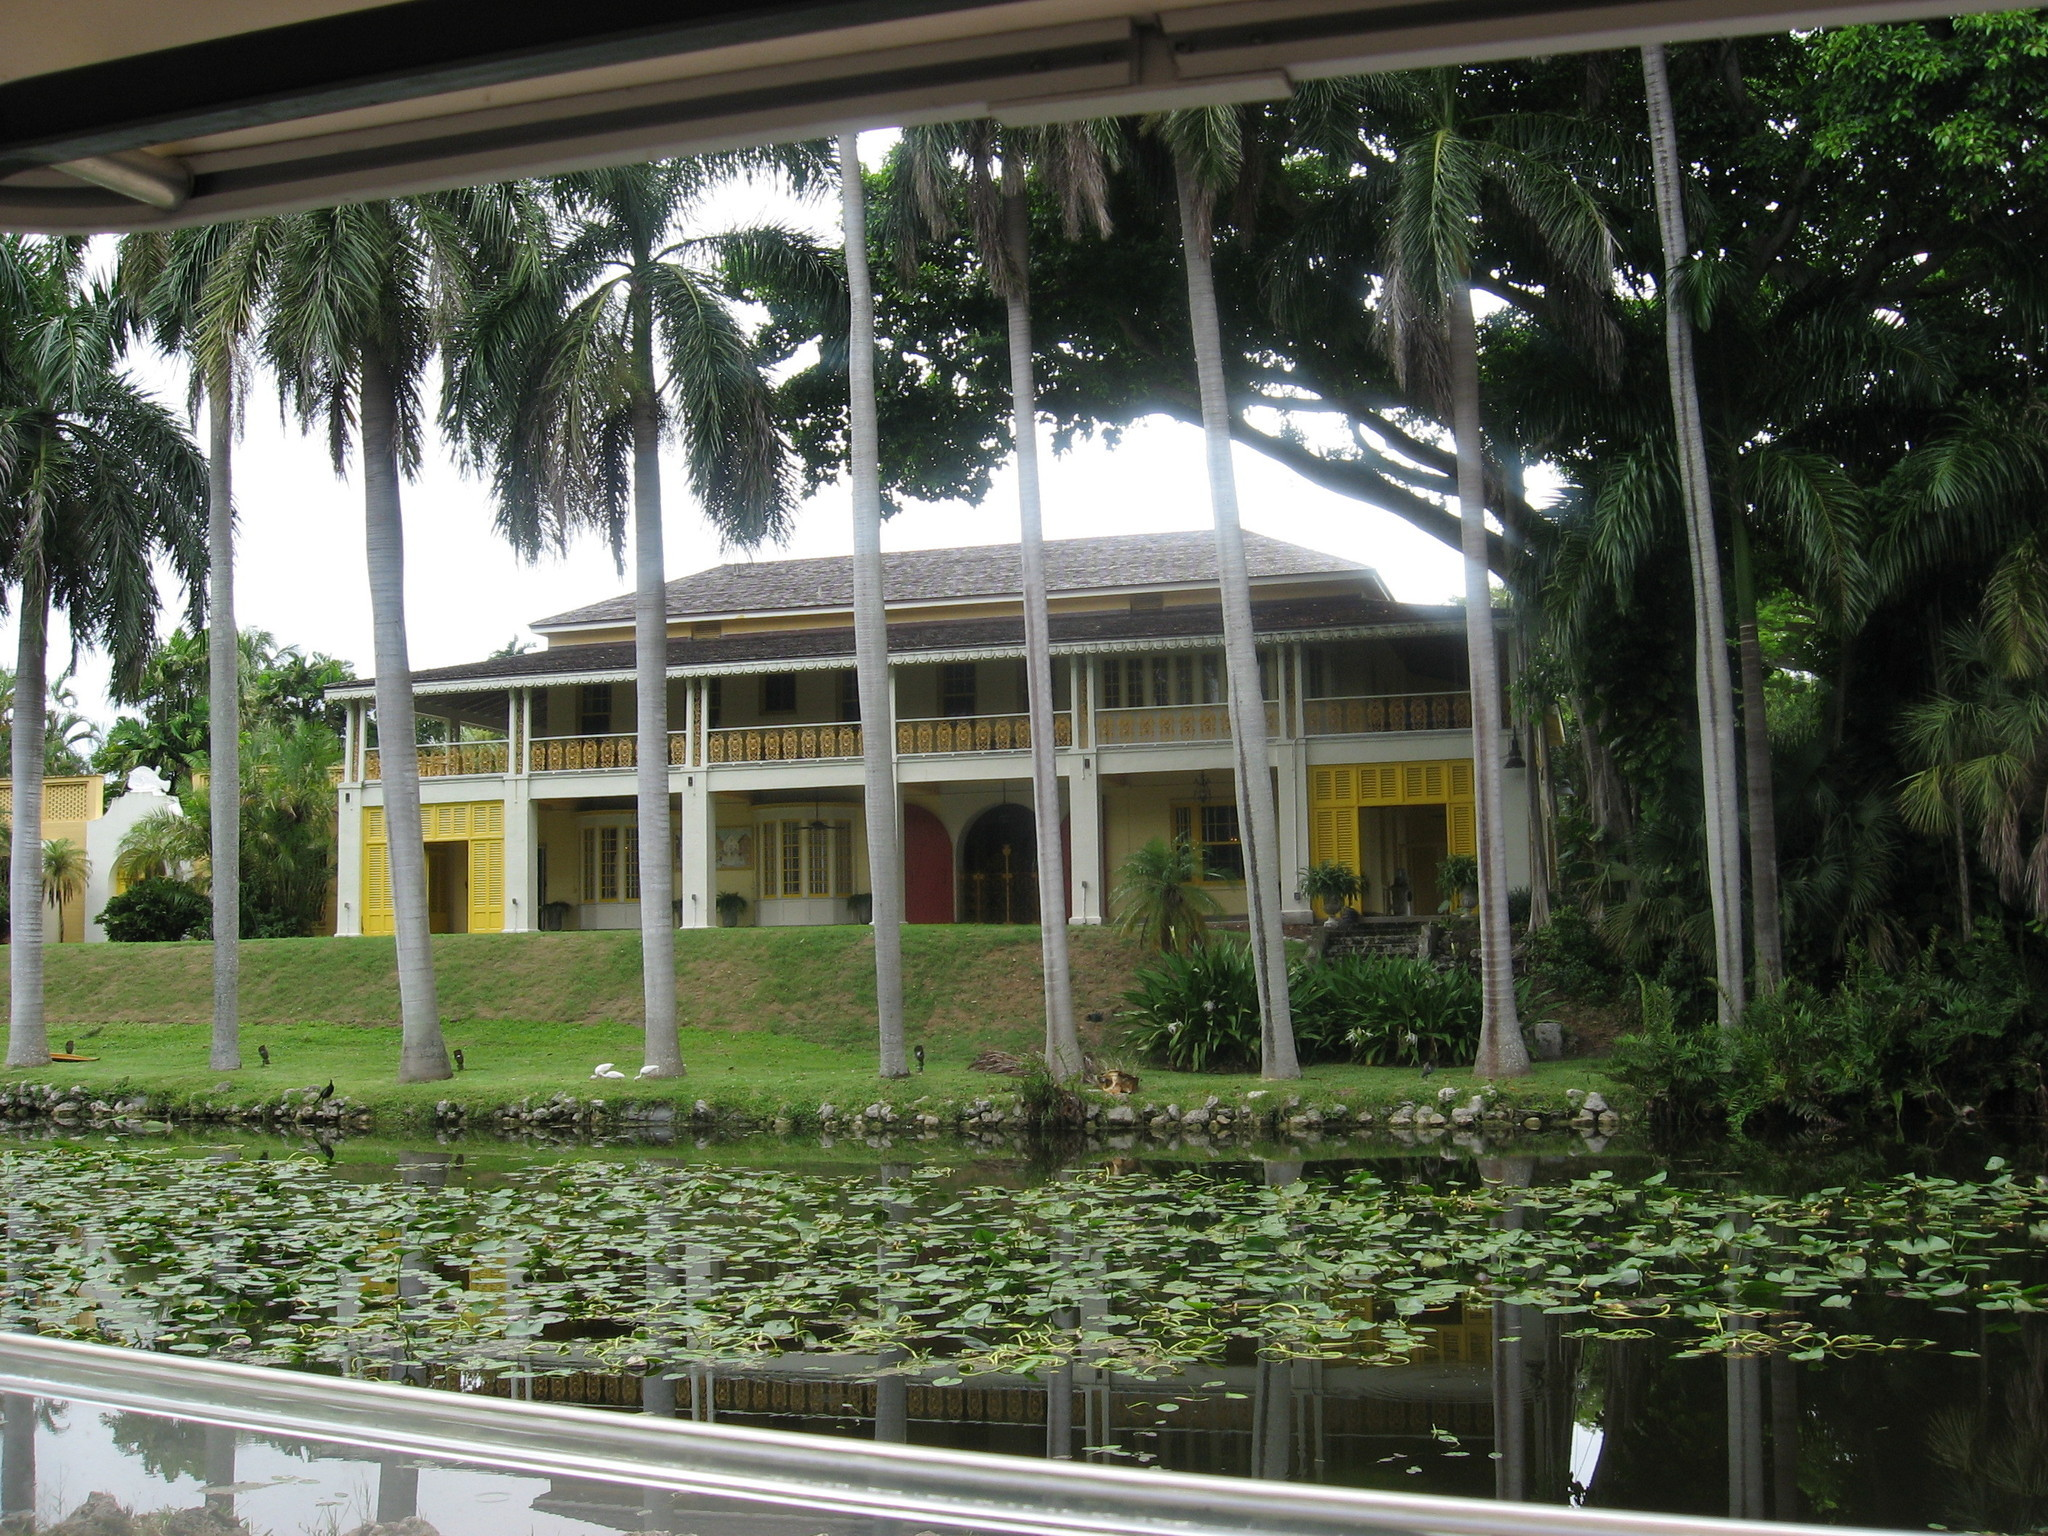 Bonnet House Museum Gardens In Fort Lauderdale To Offer New Behind The Scenes Tour Starting